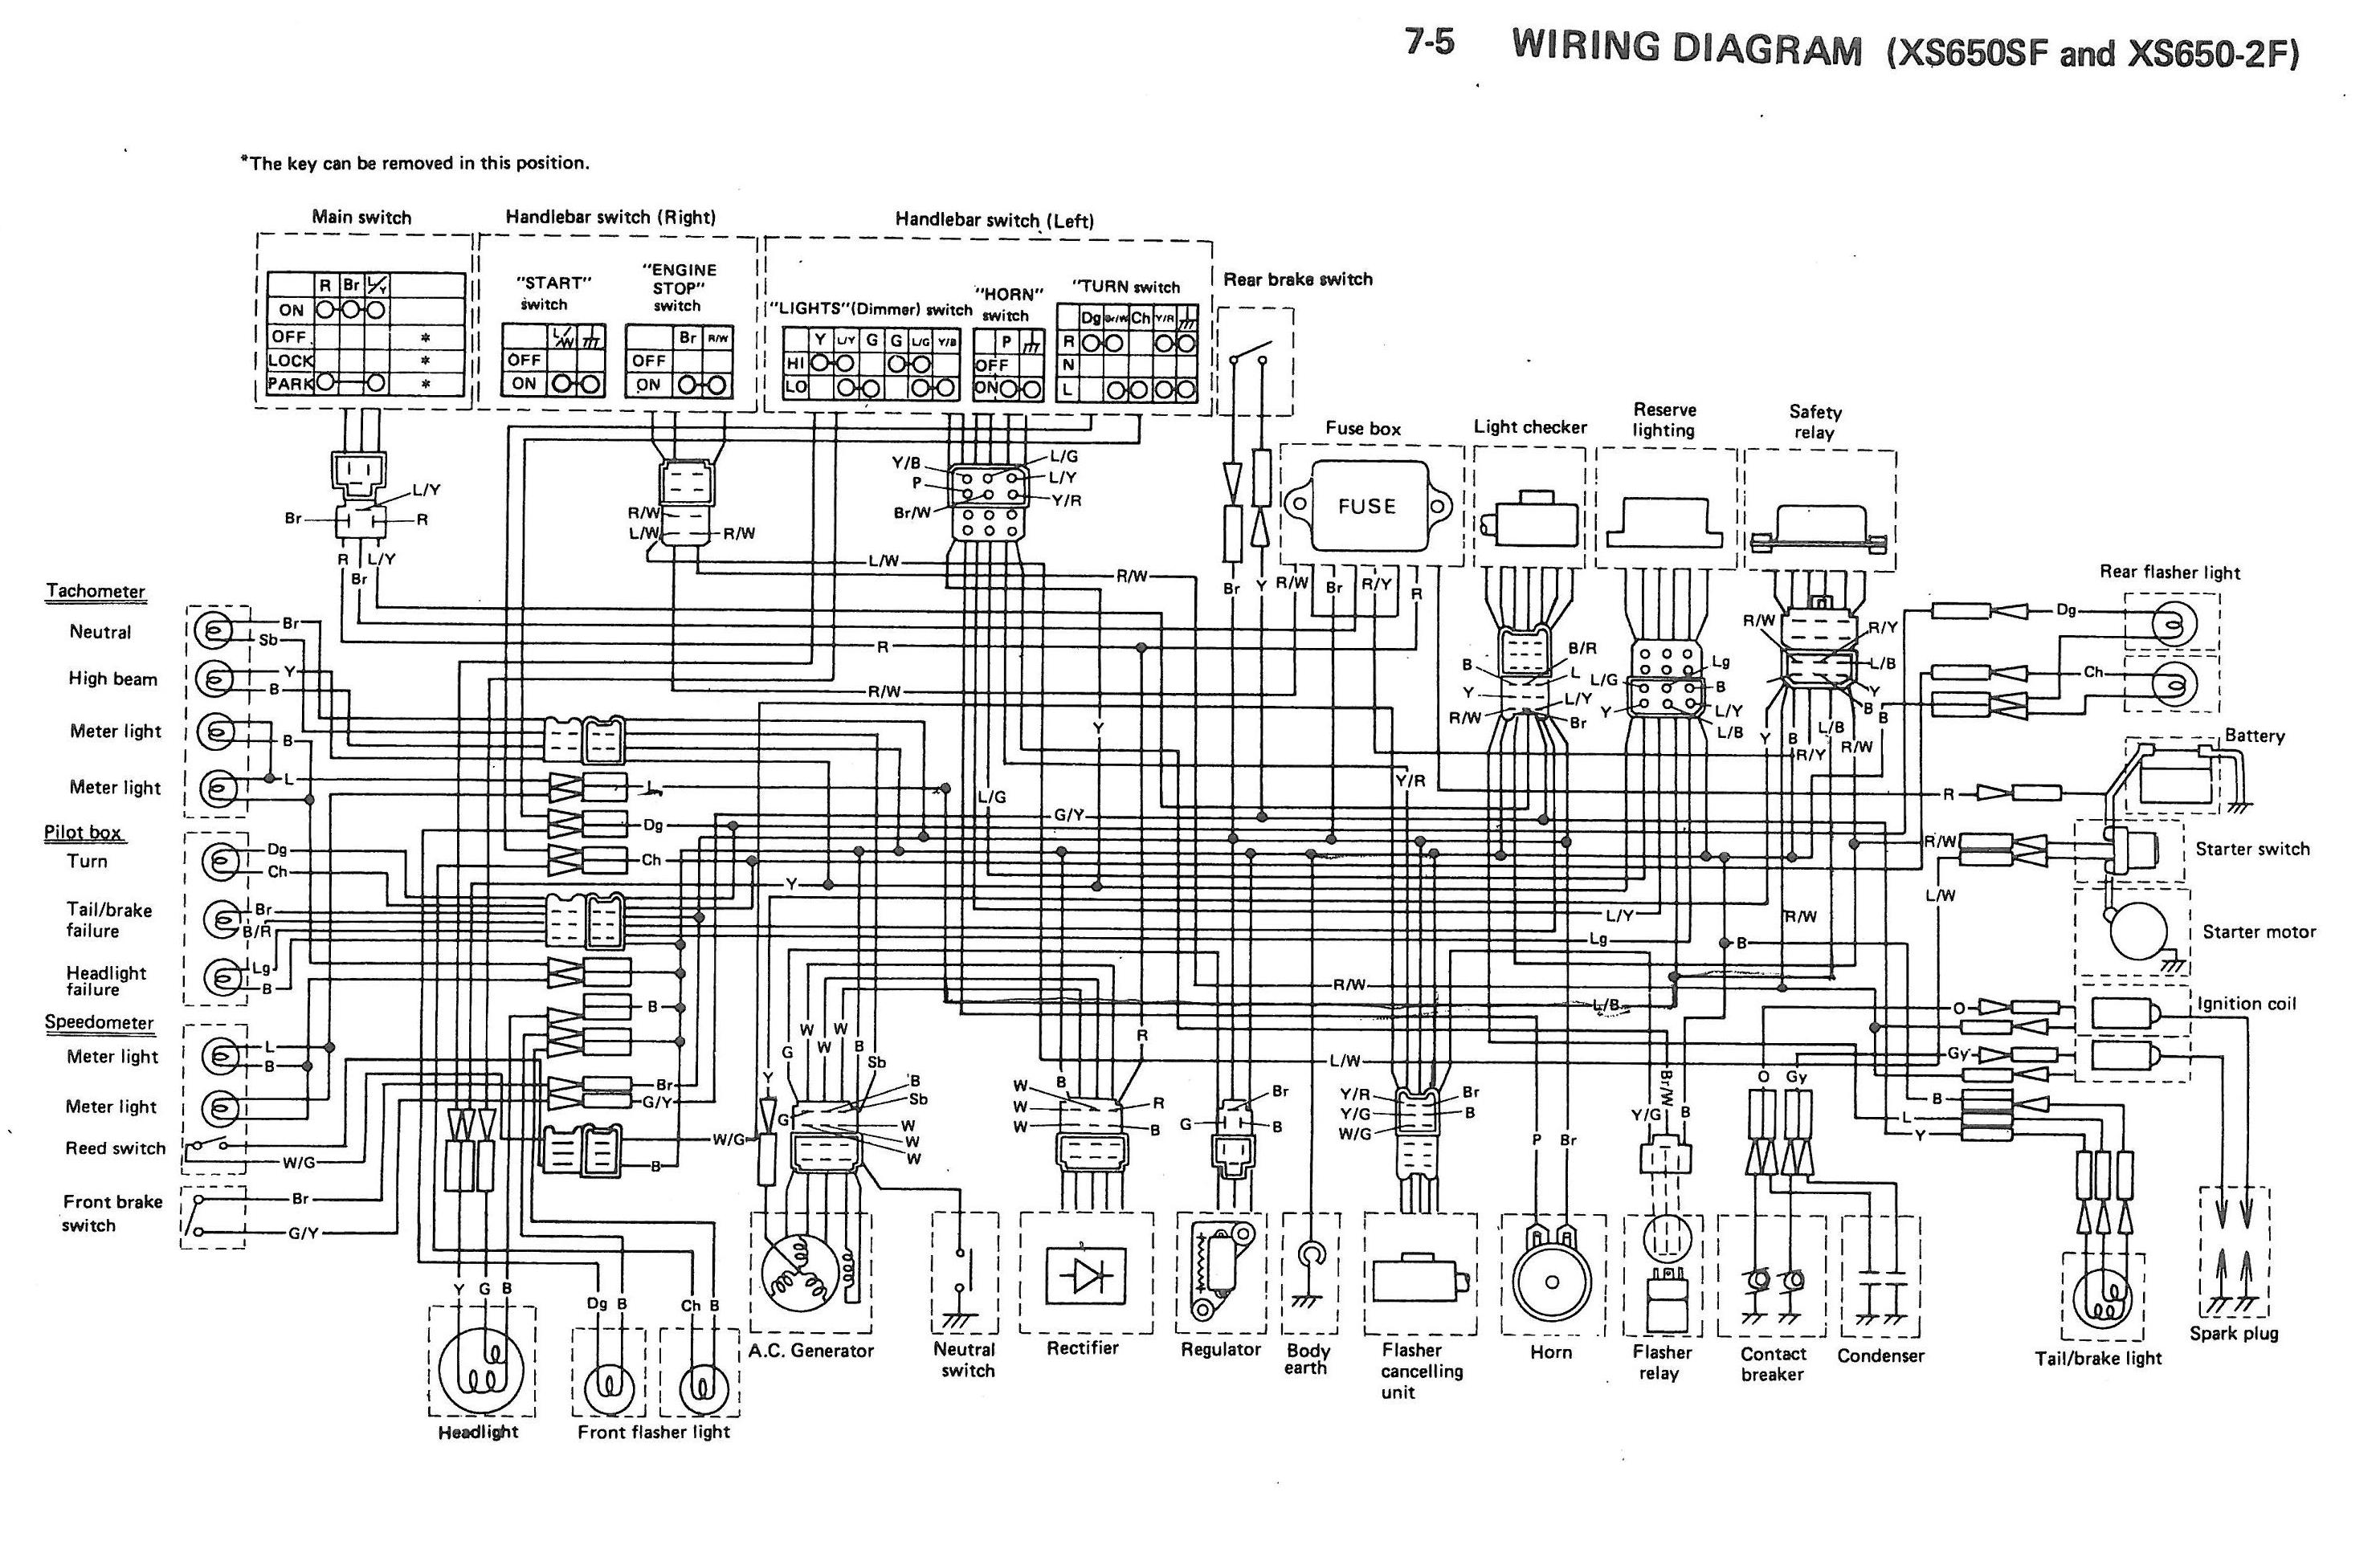 79 xs650sf 2f xs650 79 xs650sf 2f wiring diagrams thexscafe wiring diagram at nearapp.co